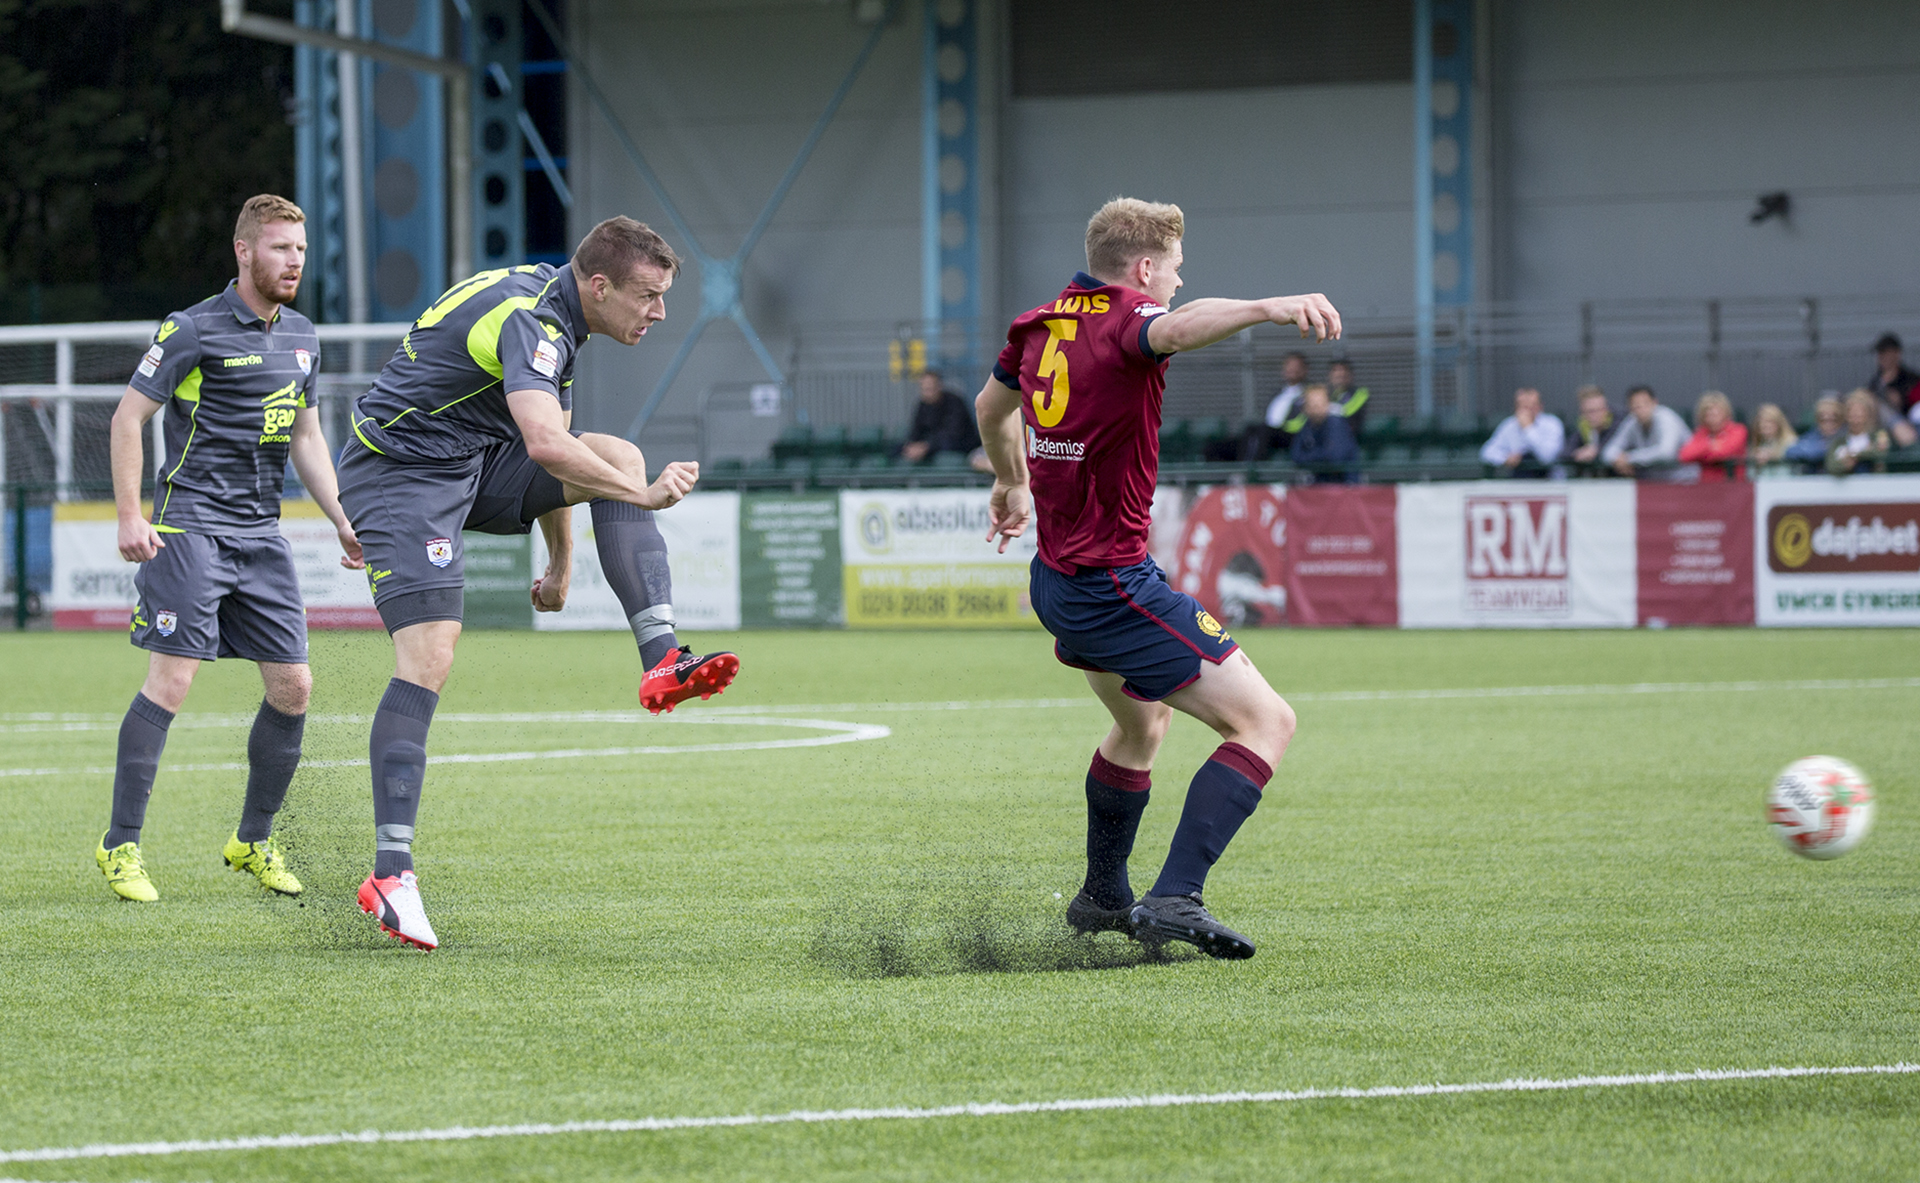 Les Davies strikes for The Nomads